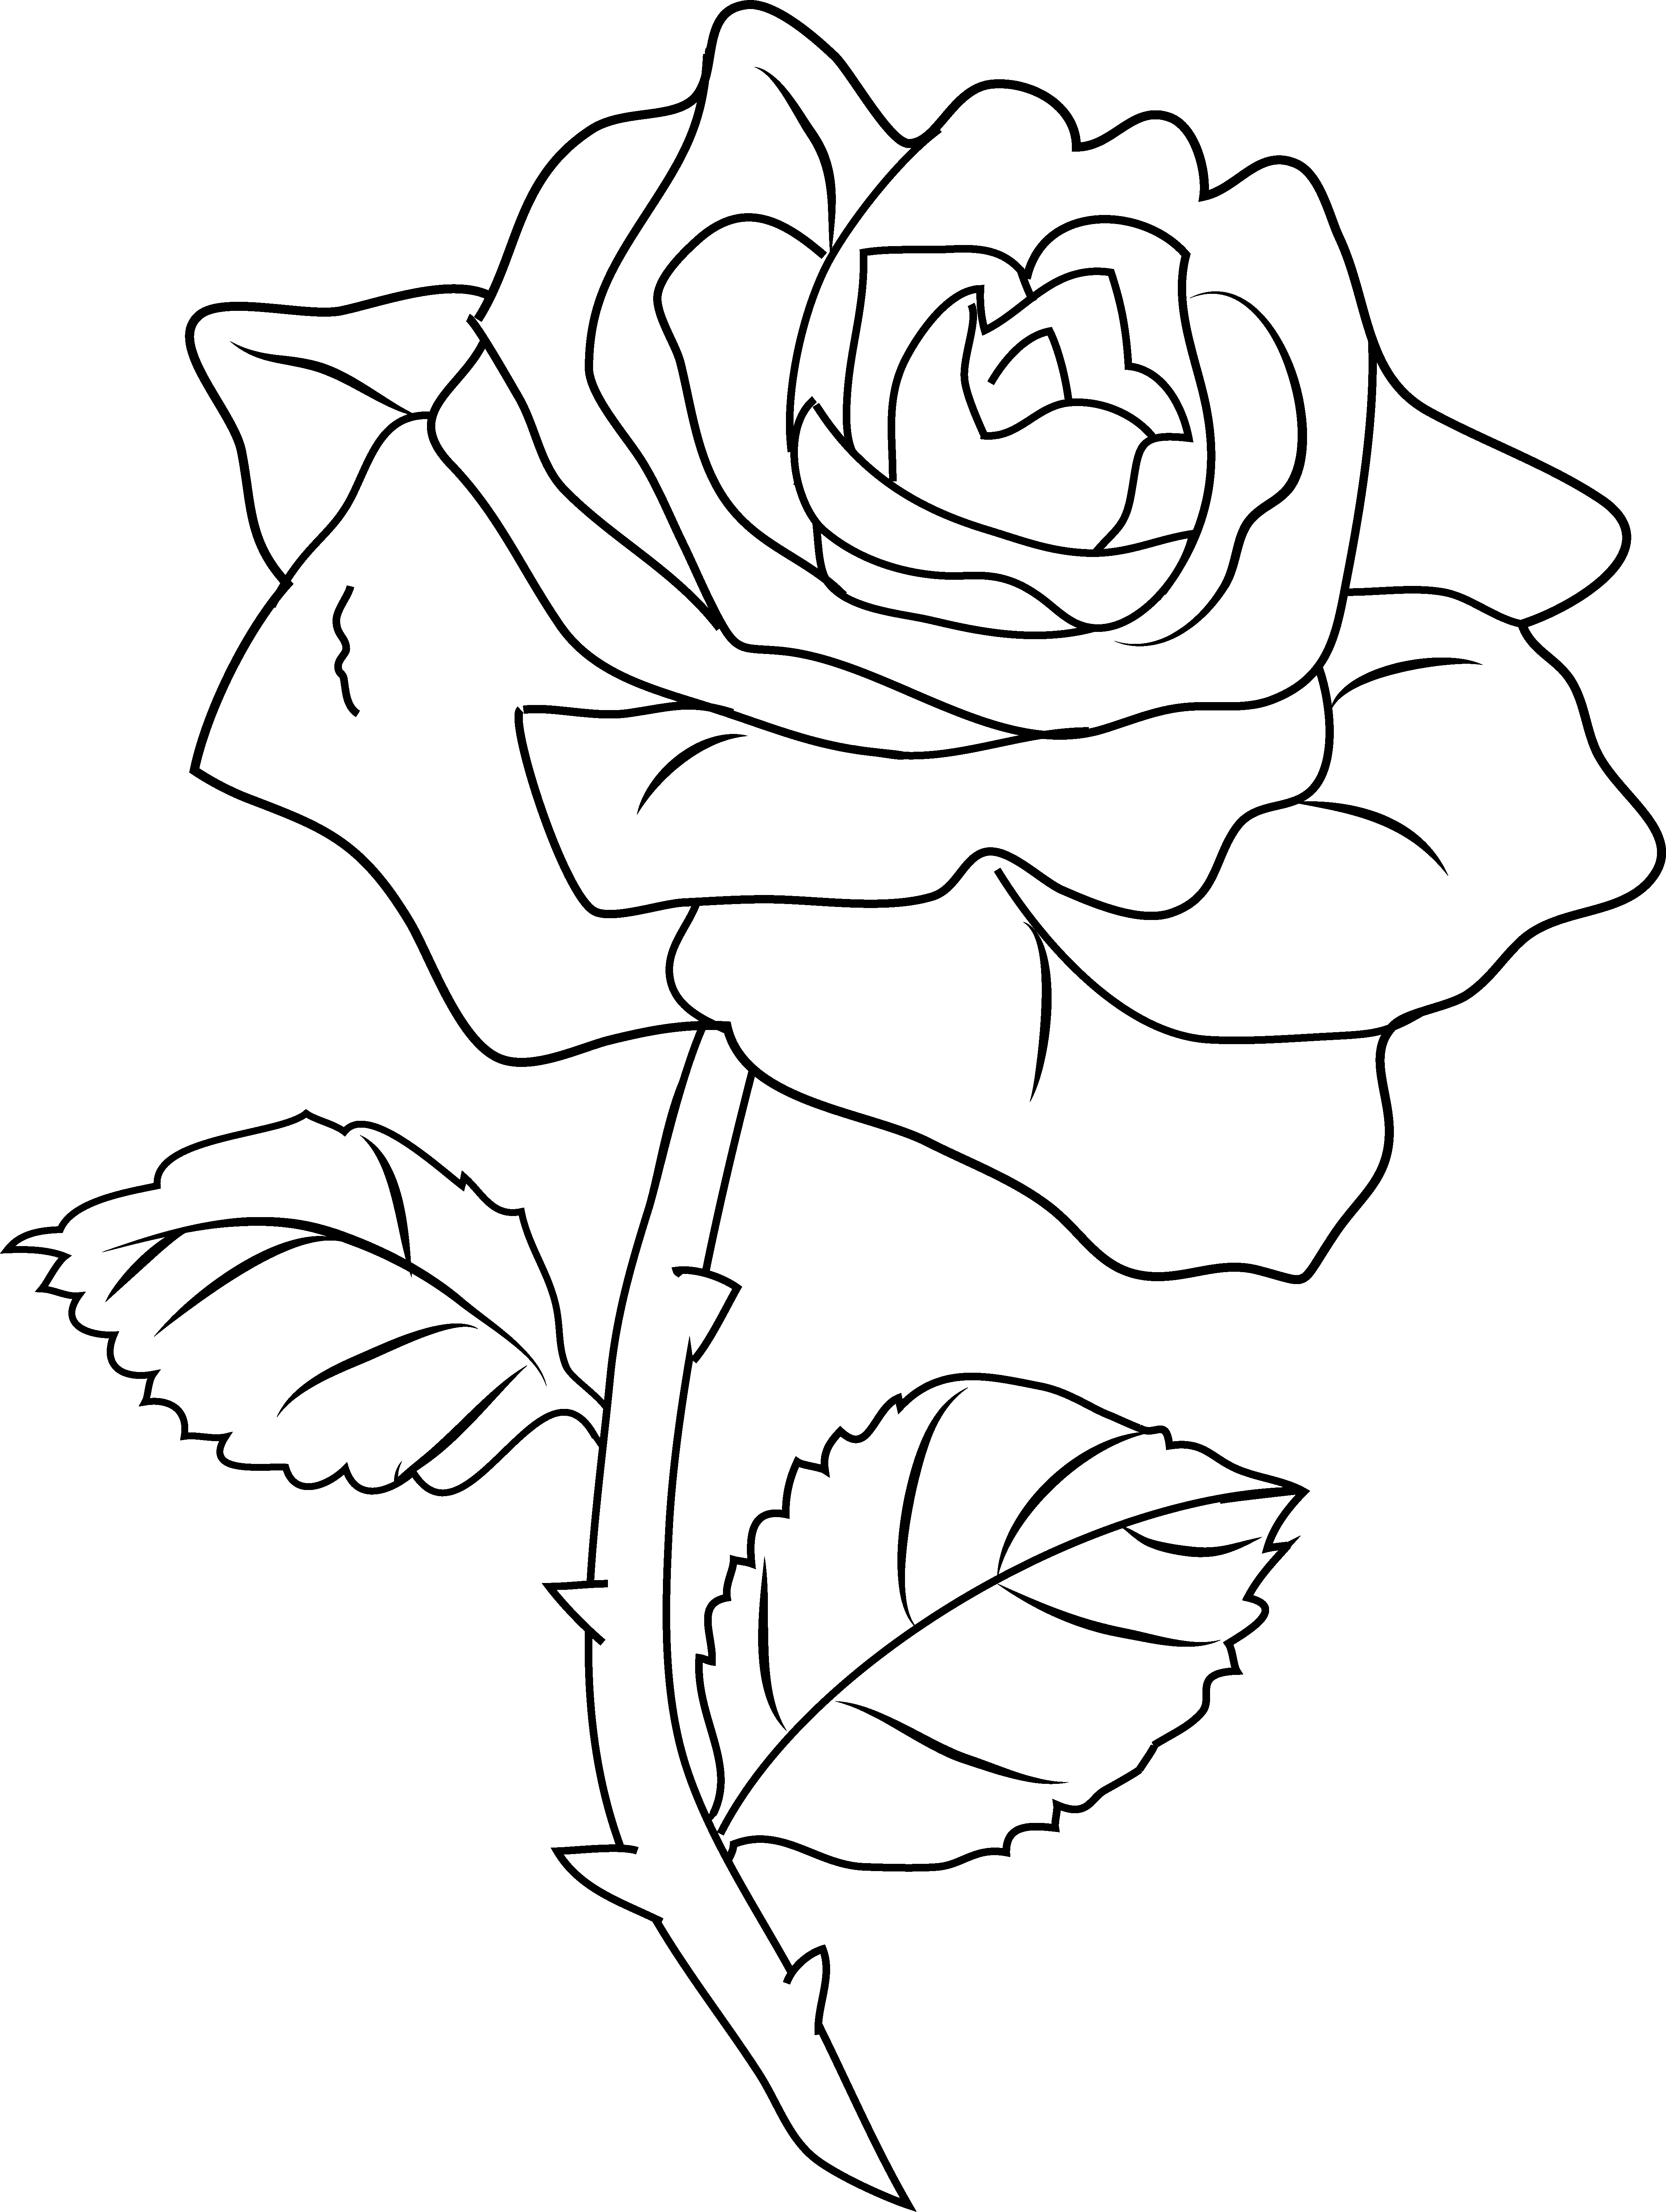 a coloring page of a rose roses coloring pages to download and print for free page a coloring a rose of